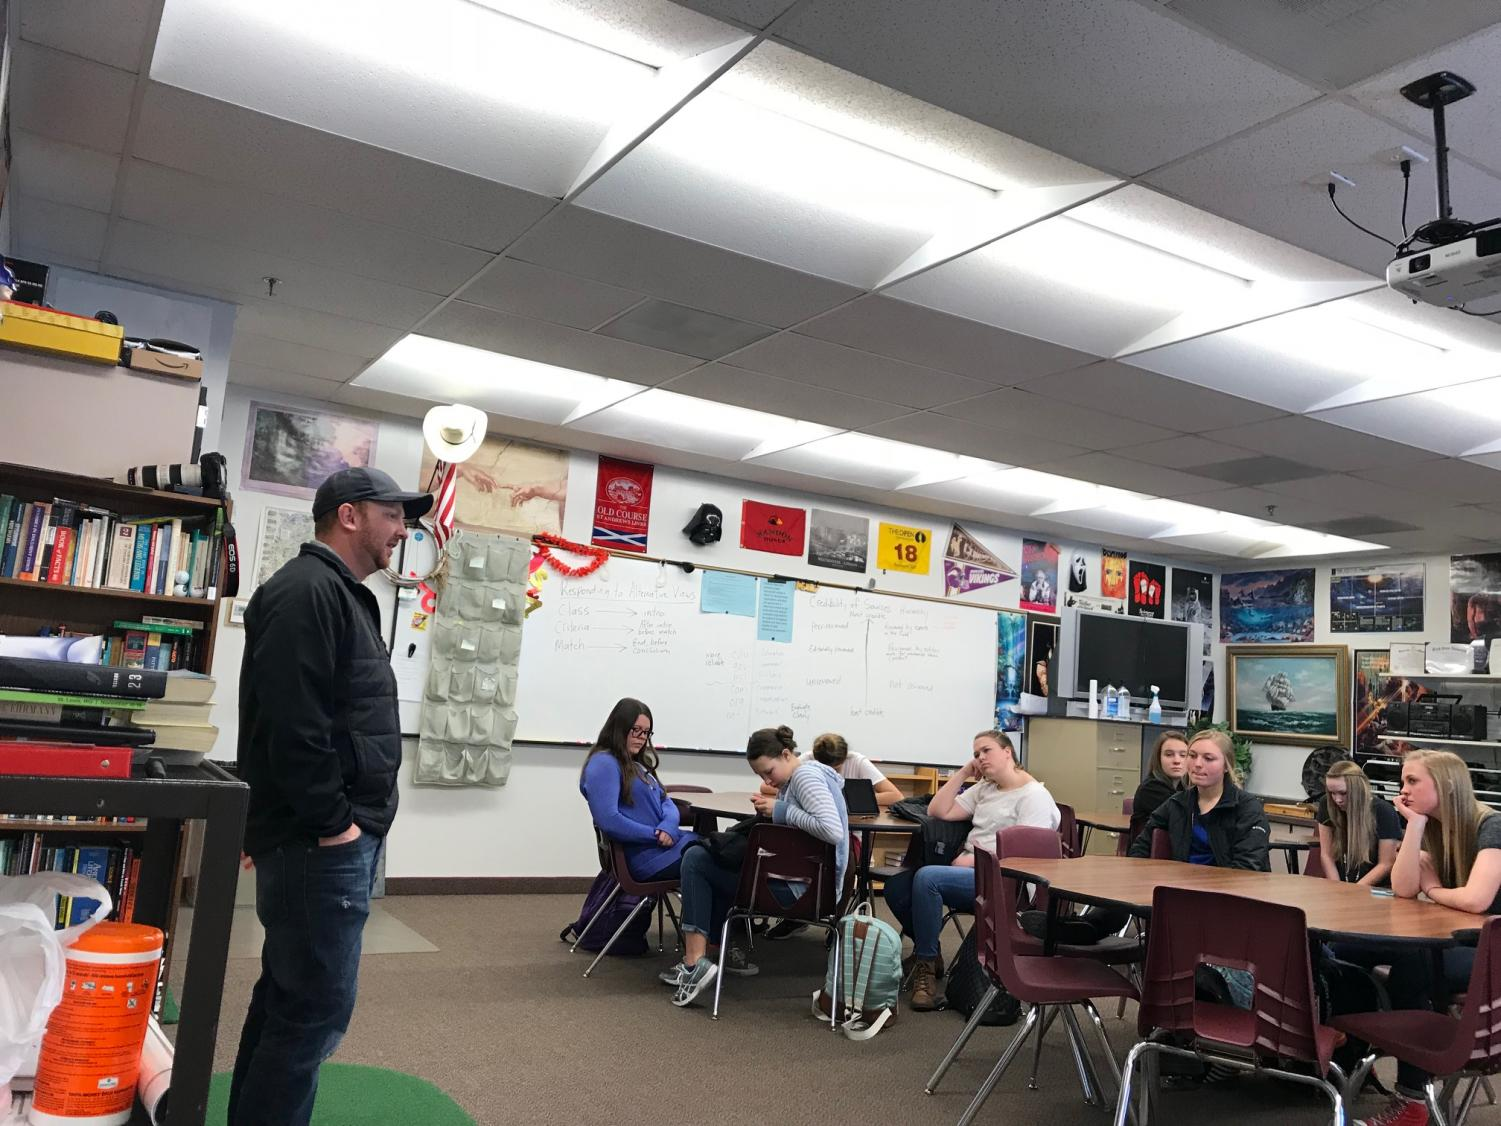 SCHOOLED: Duke Dance from SVI Media visits with freshmen in Mr. Fullmer's class. Students spent the week there learning about opportunities in media.